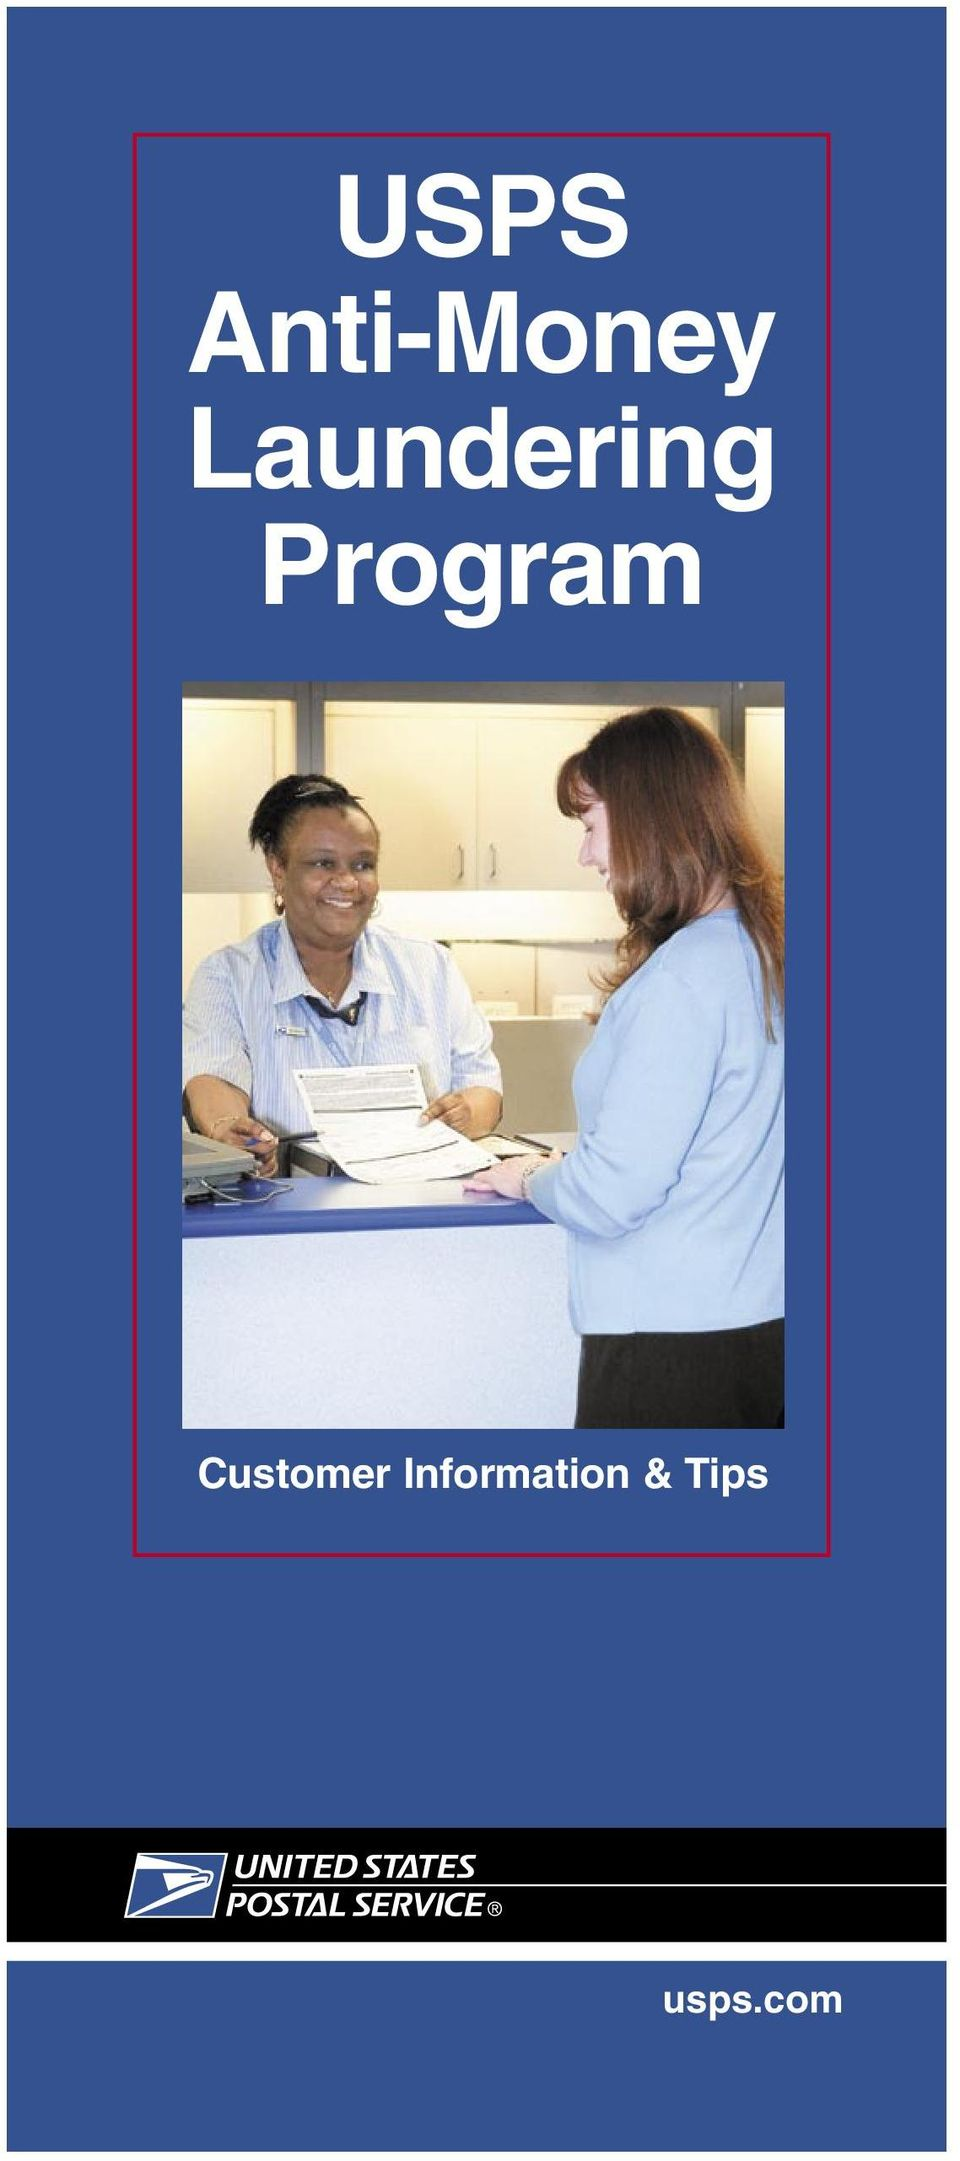 Program Customer